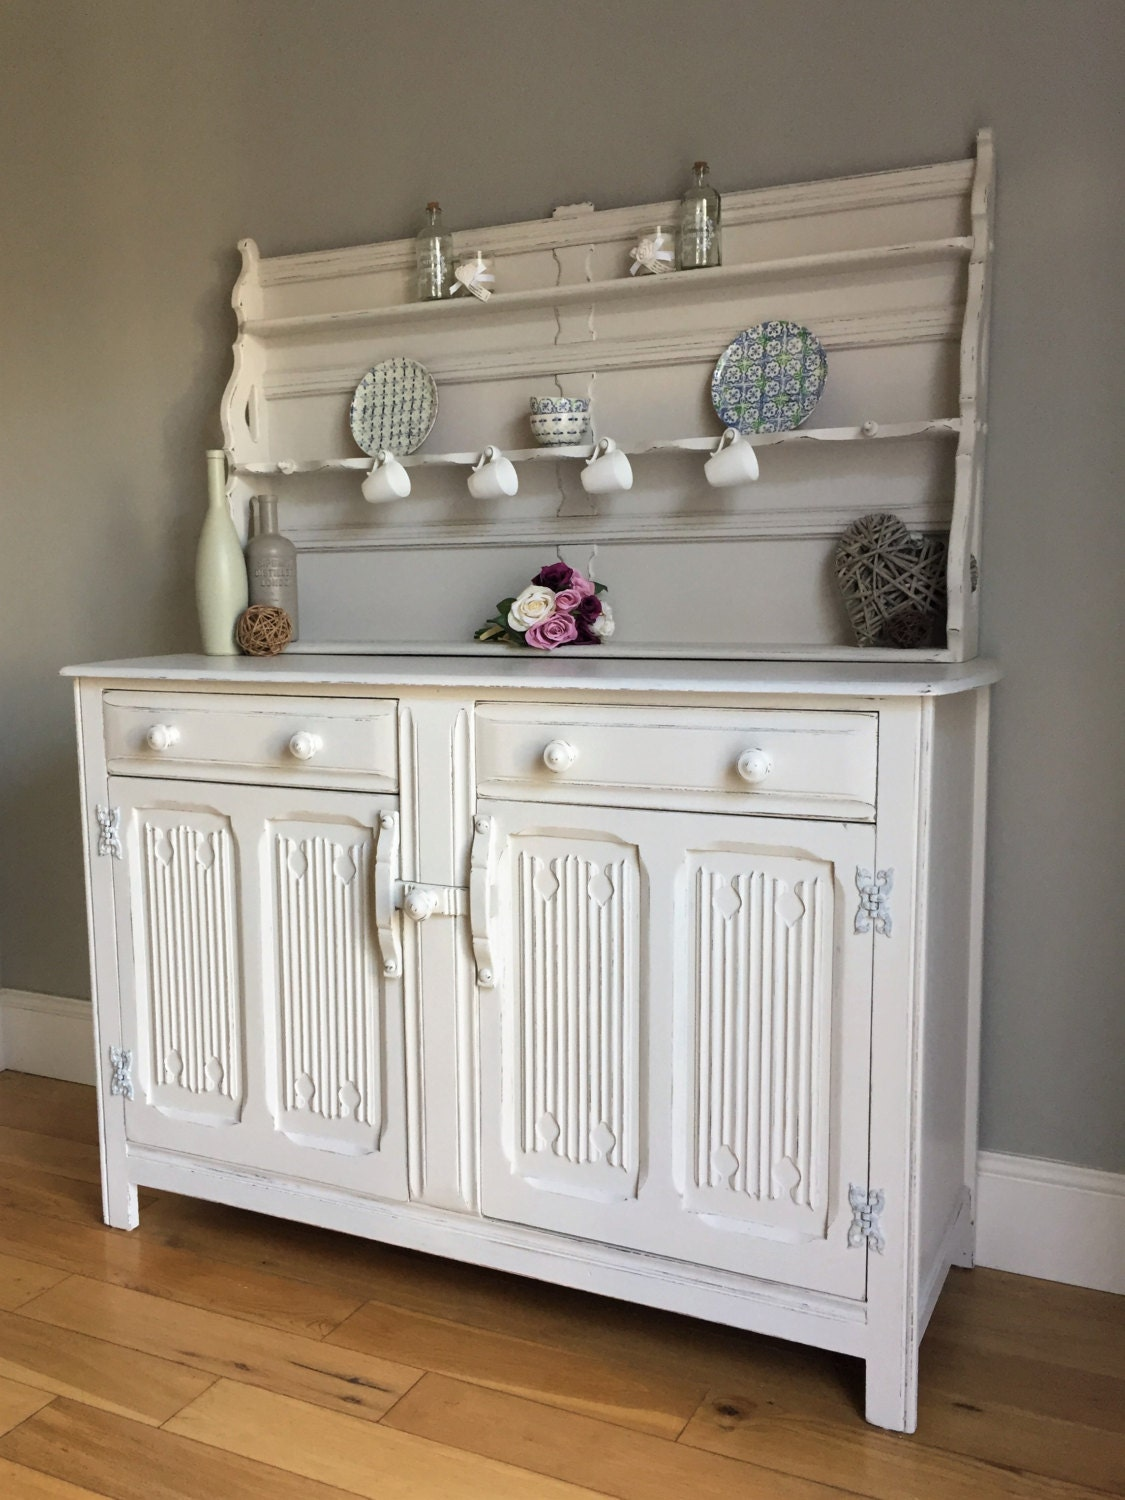 Vintage Ercol Painted Dresser  Sideboard  Display Unit (delivery quote available on request)